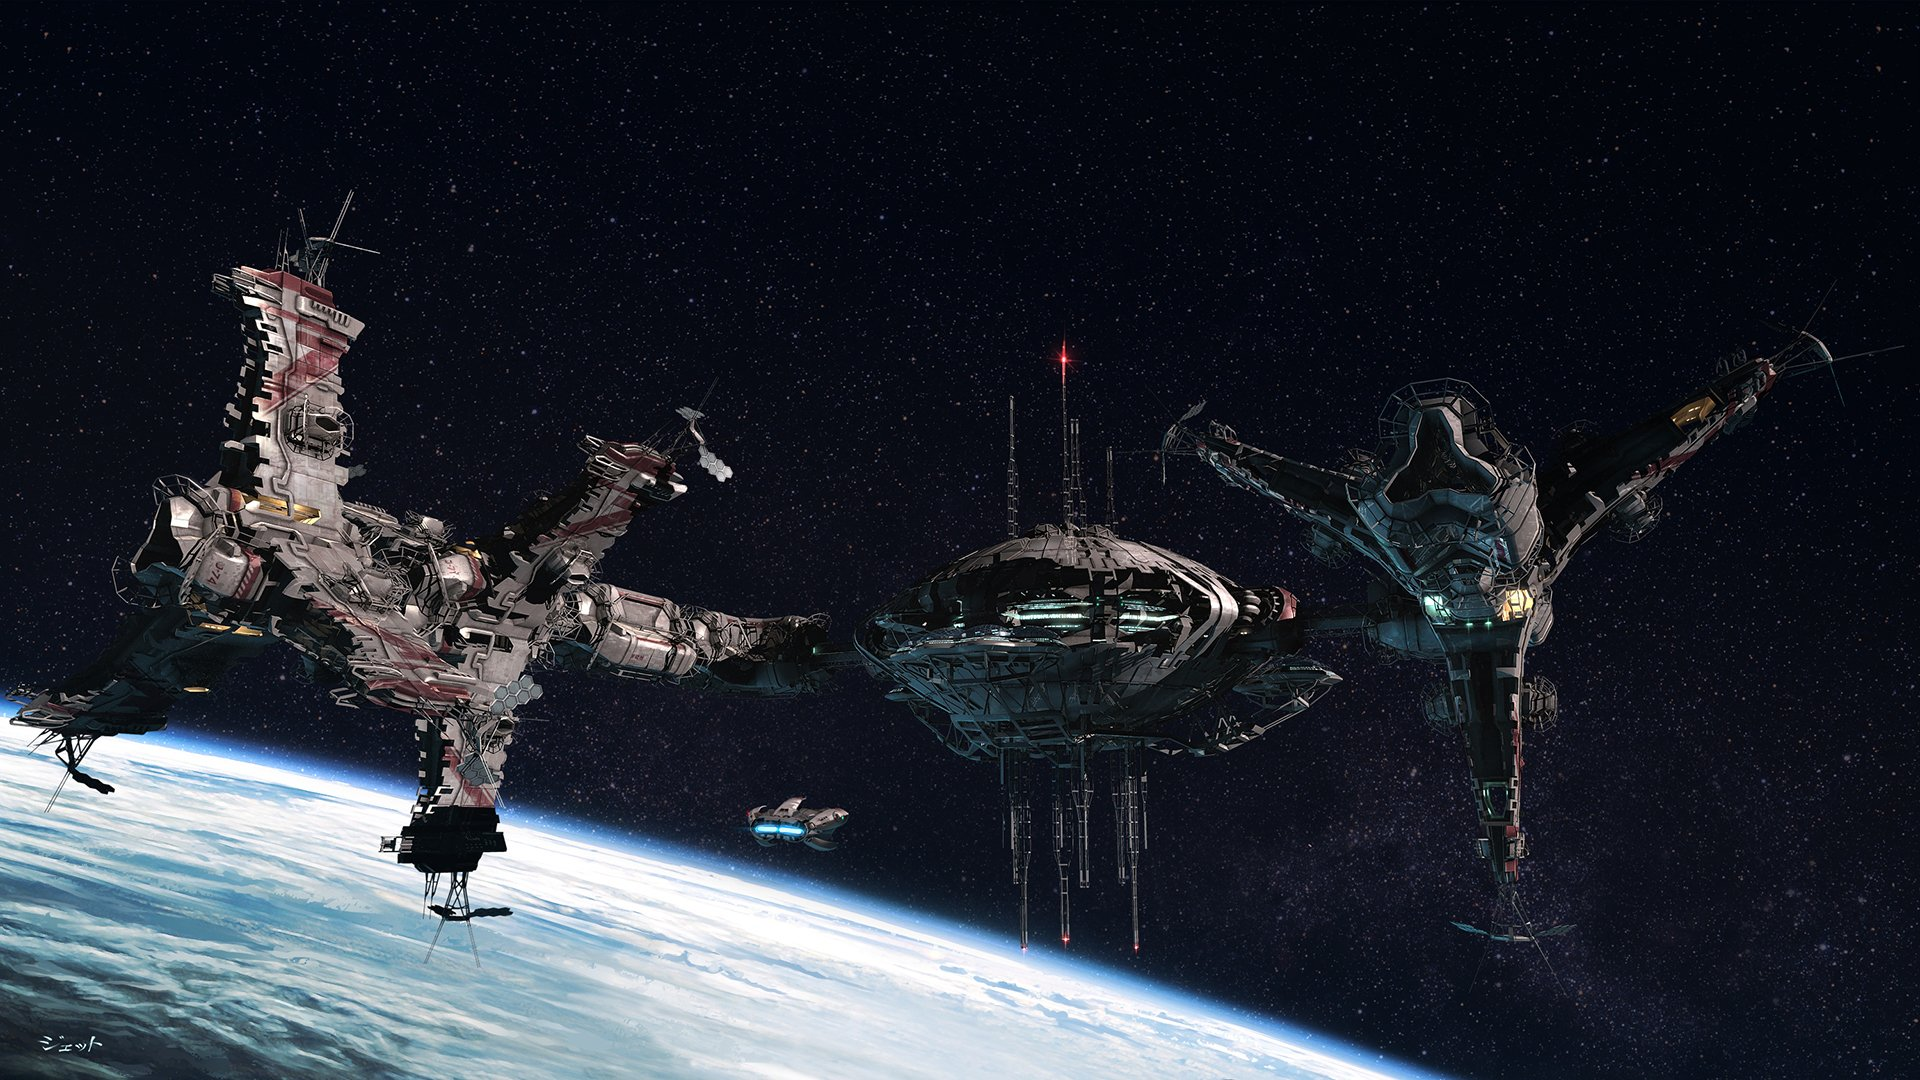 Sci Fi - Battlestar Galactica  Wallpaper